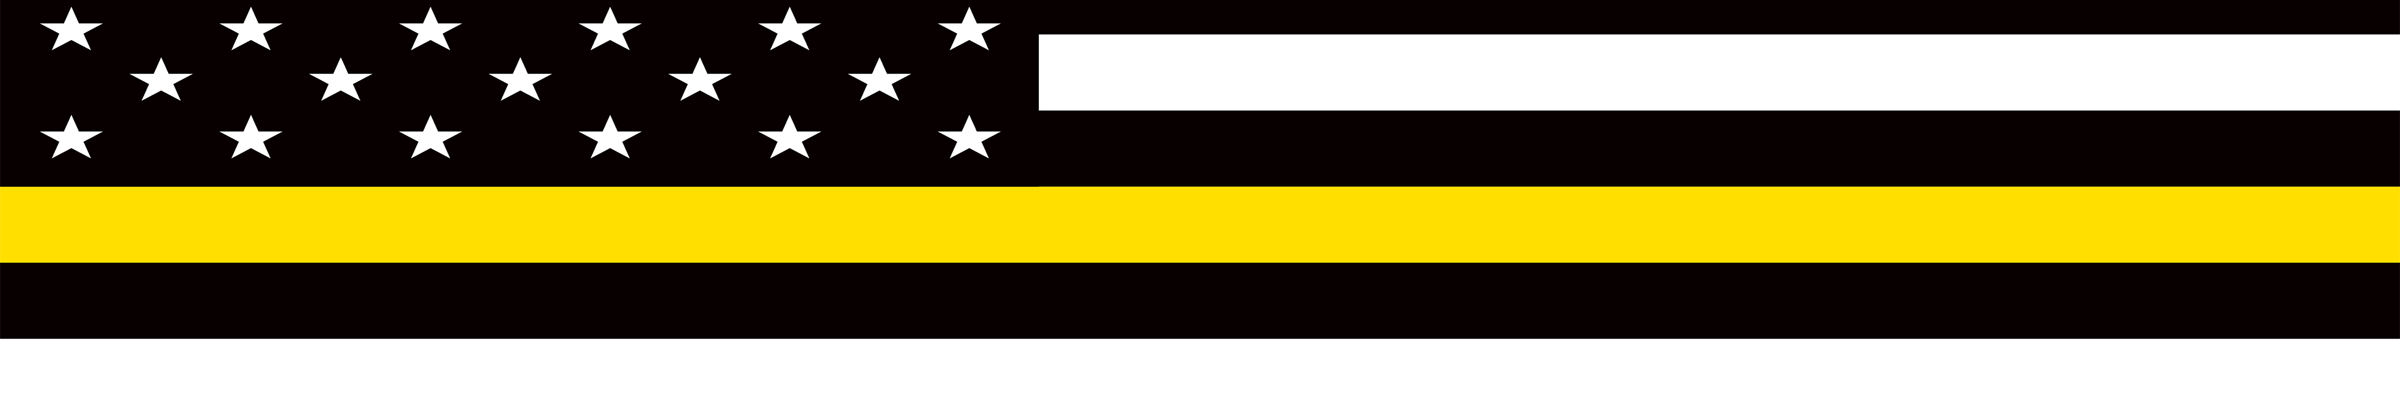 Dispatcher Yellow Line